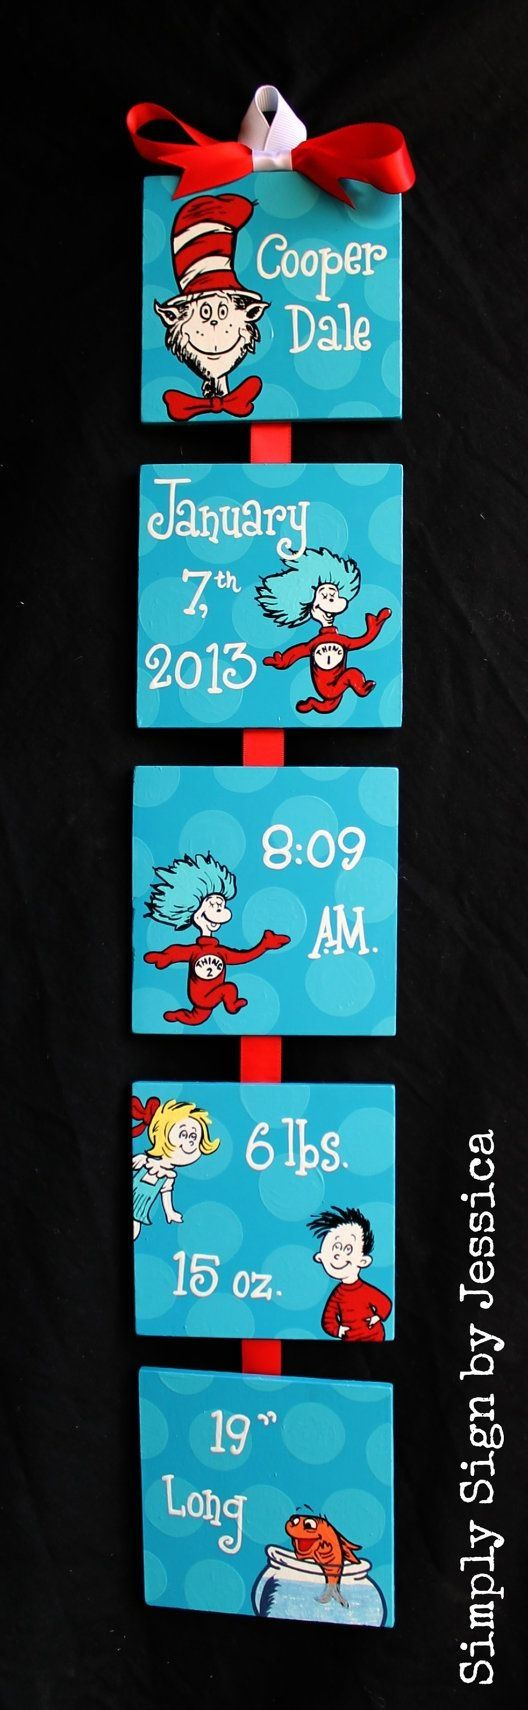 Cat in the Hat  Dr. Seuss  Style Birth Announcement for baby's nursery on Etsy, $50.00 by viola